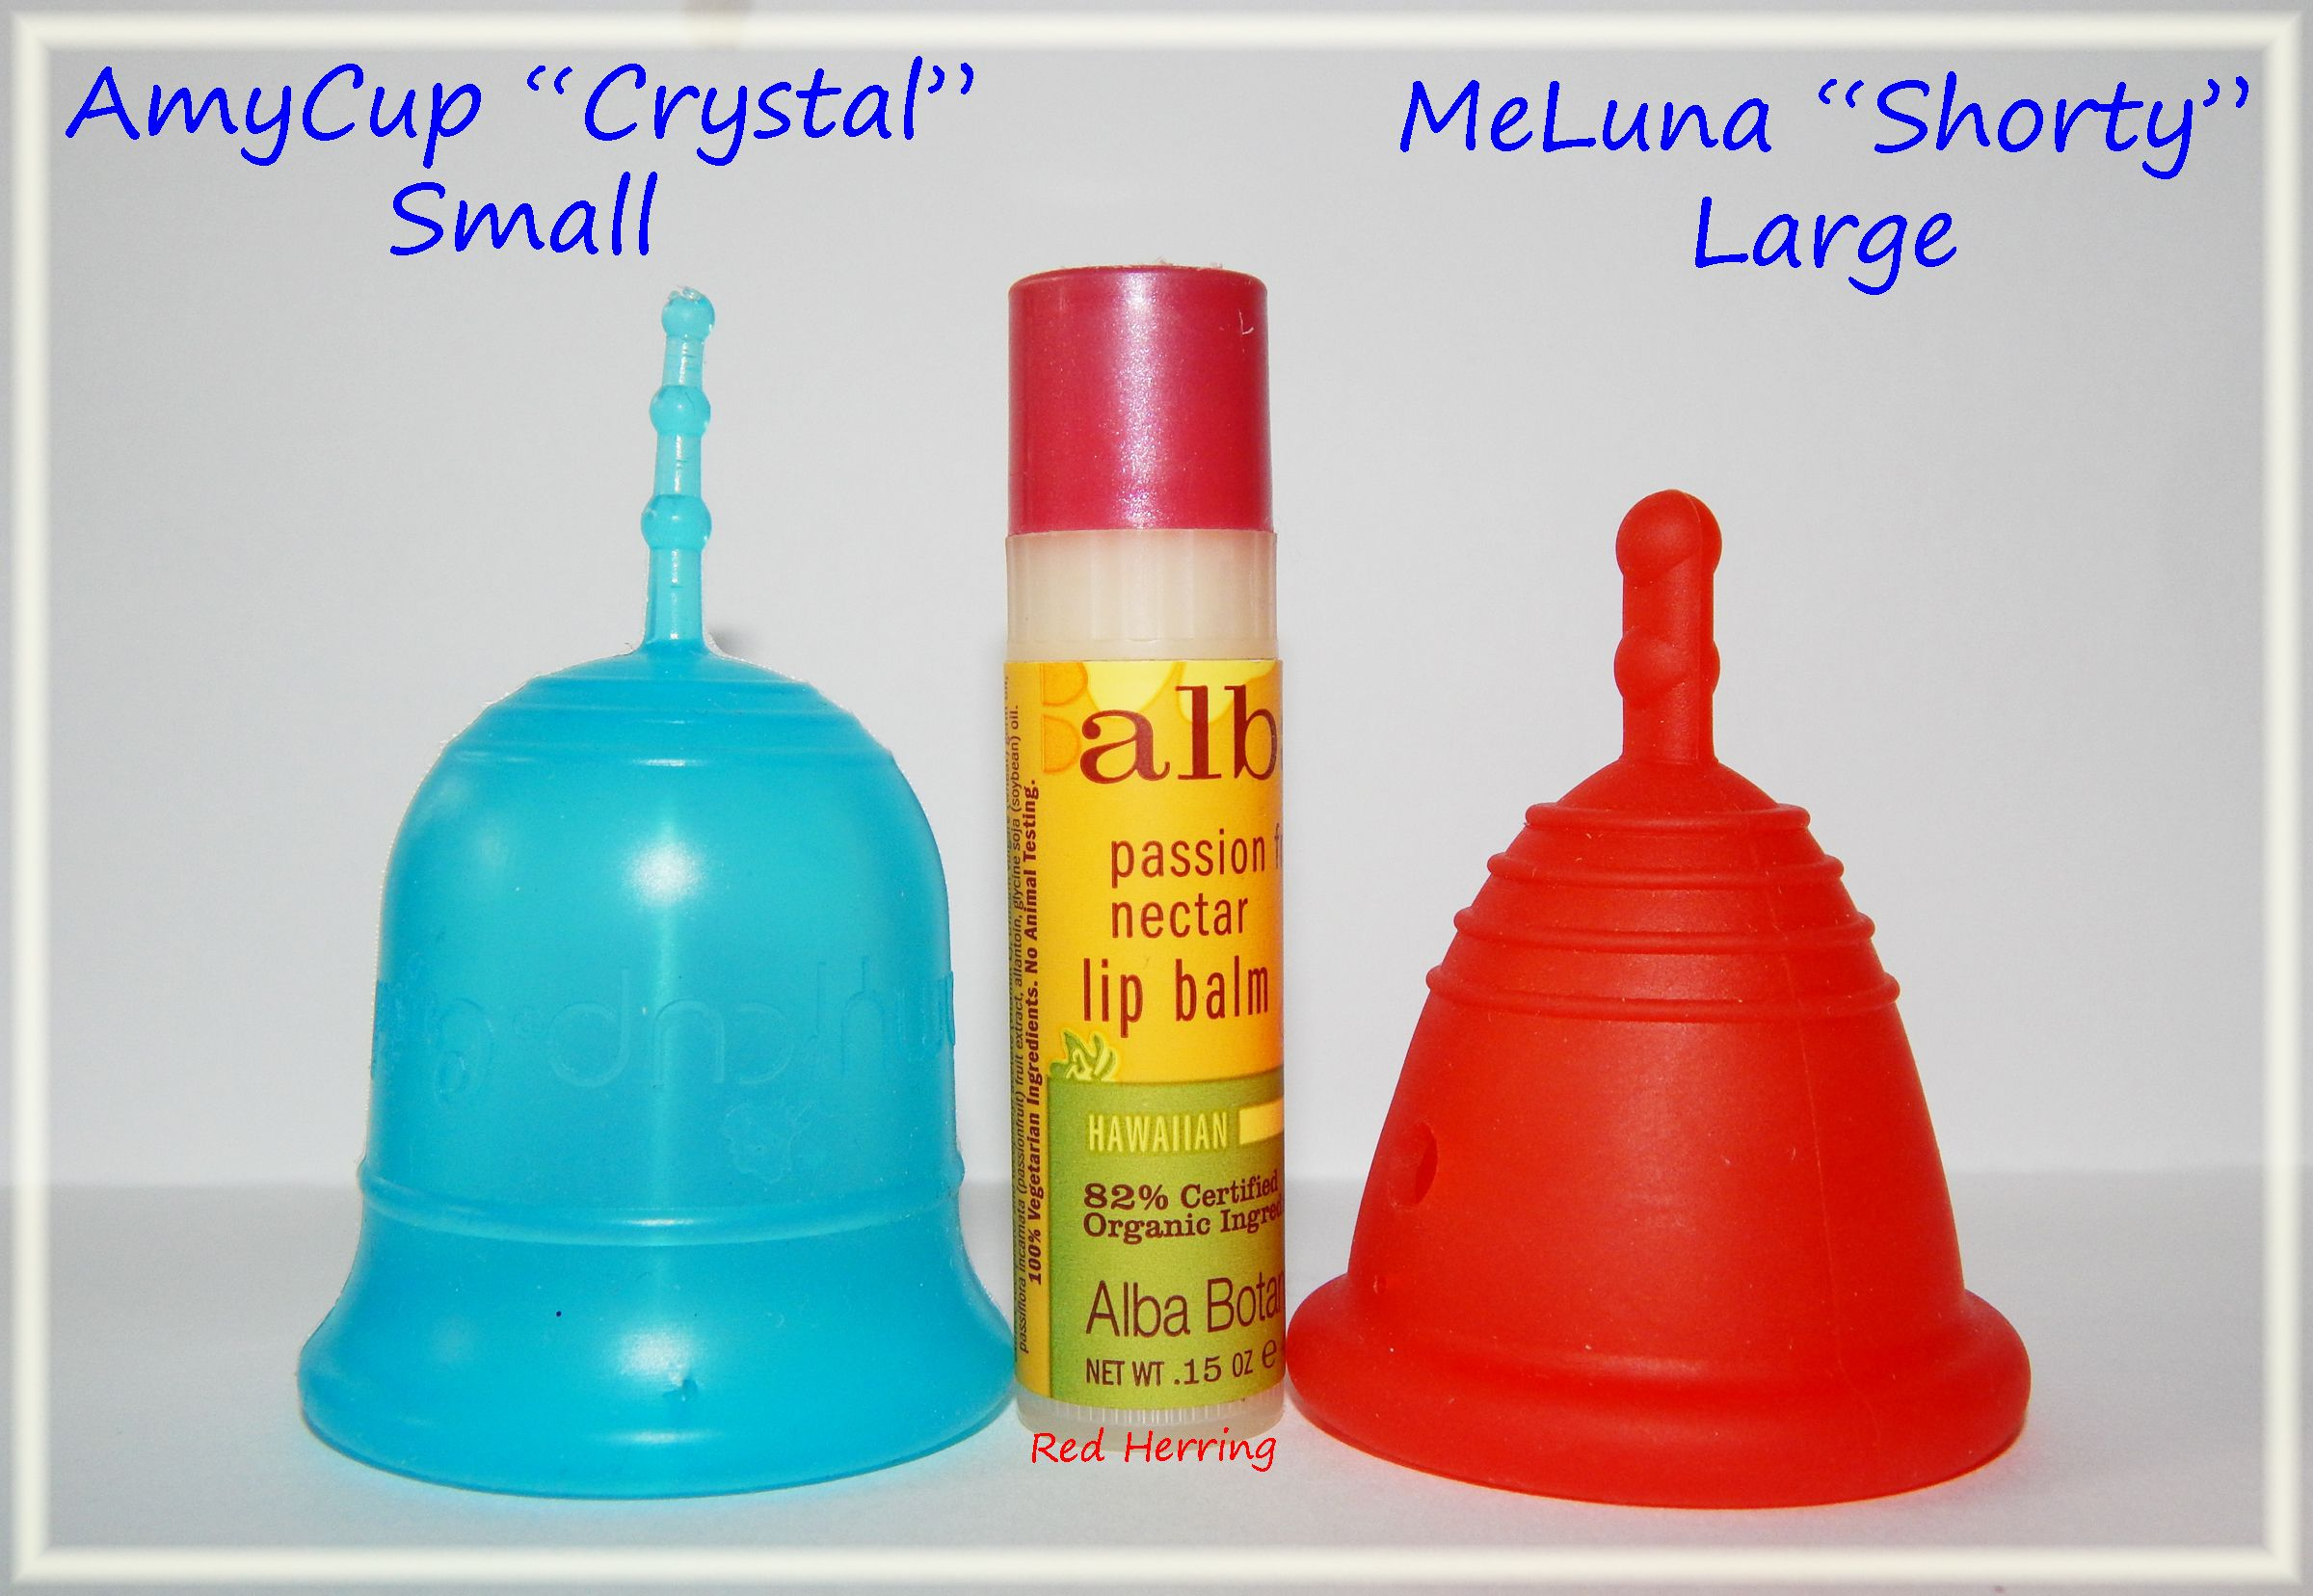 Amycup Crystal Small Vs Meluna Shorty Large The Balm